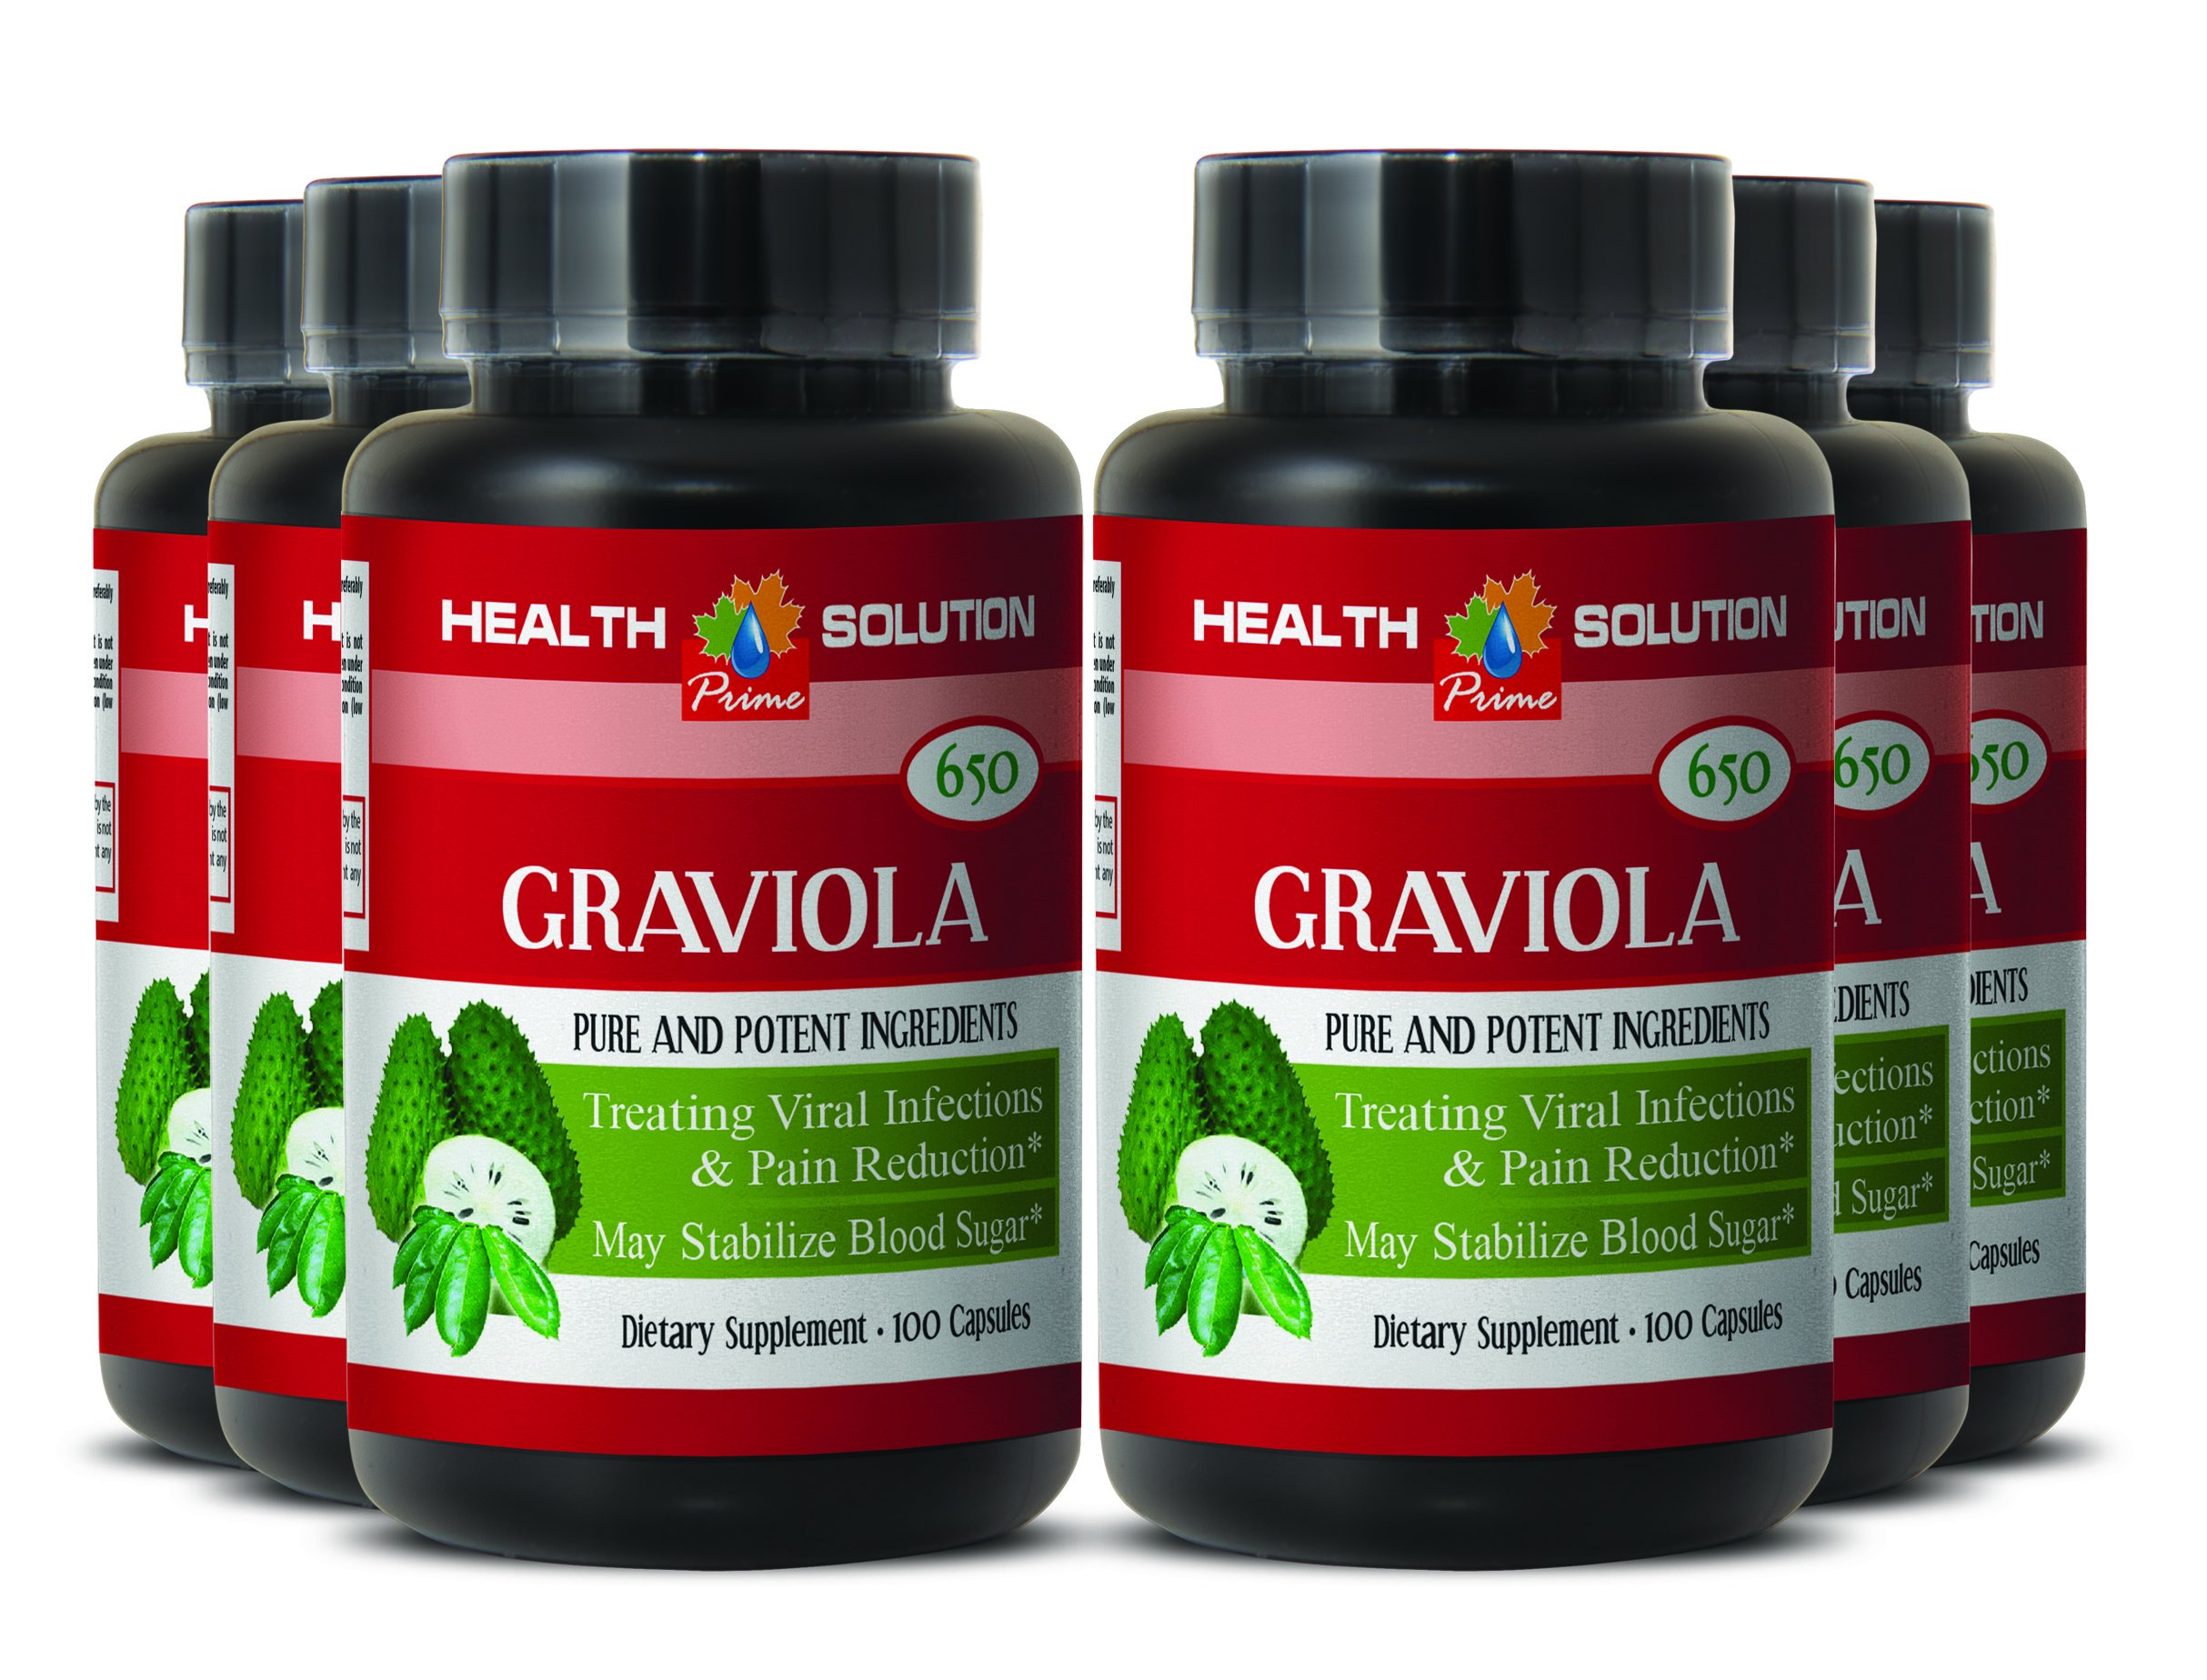 Pancreas care - PREMIUM GRAVIOLA EXTRACT 650 Mg - Soursop pills - 6 Bottles 600 Capsules by Health Solution Prime